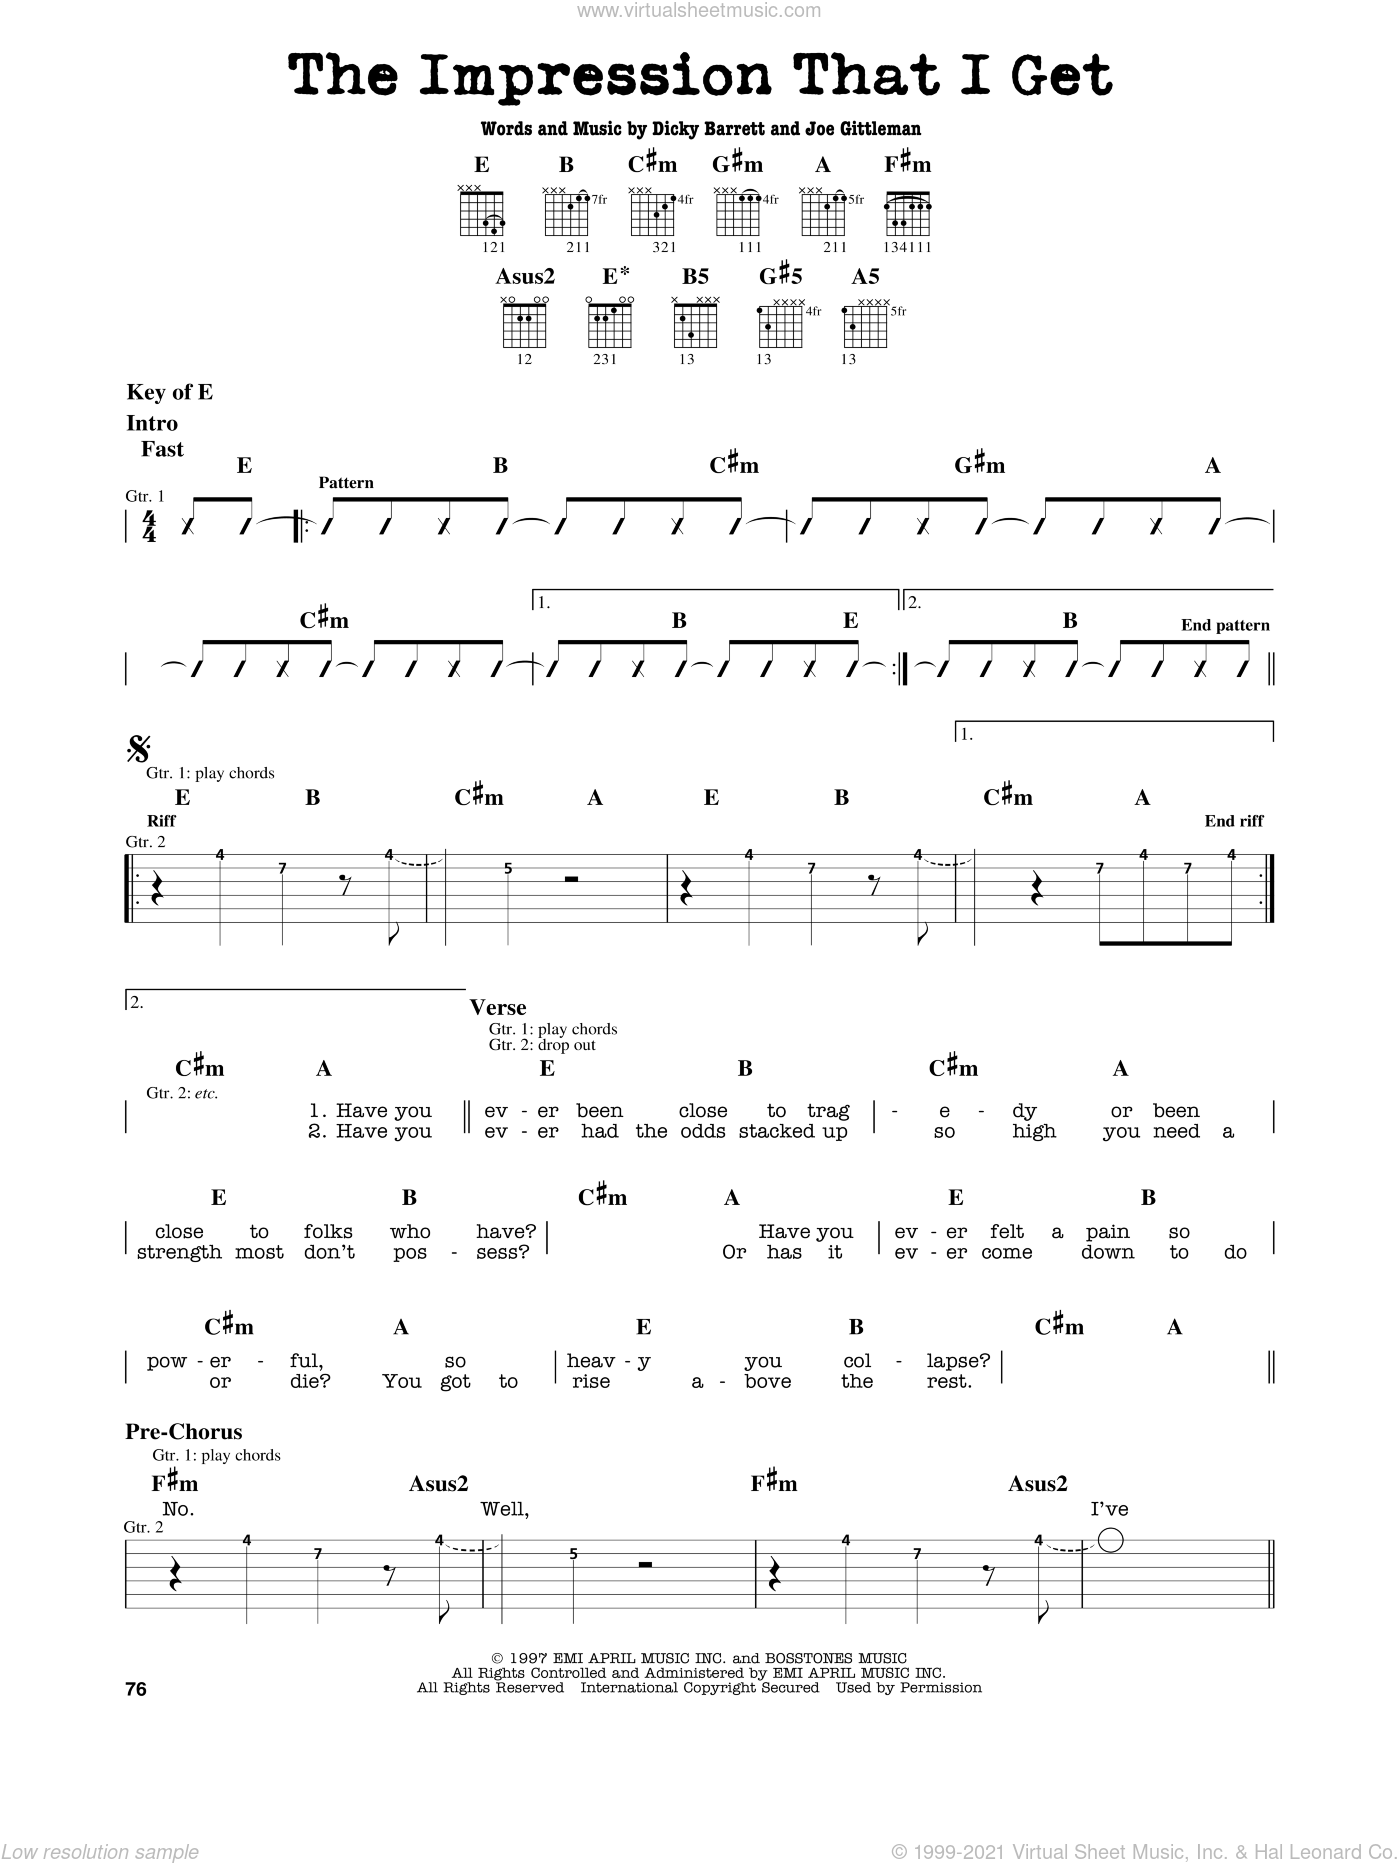 The Impression That I Get sheet music for guitar solo (lead sheet) by Joe Gittleman. Score Image Preview.